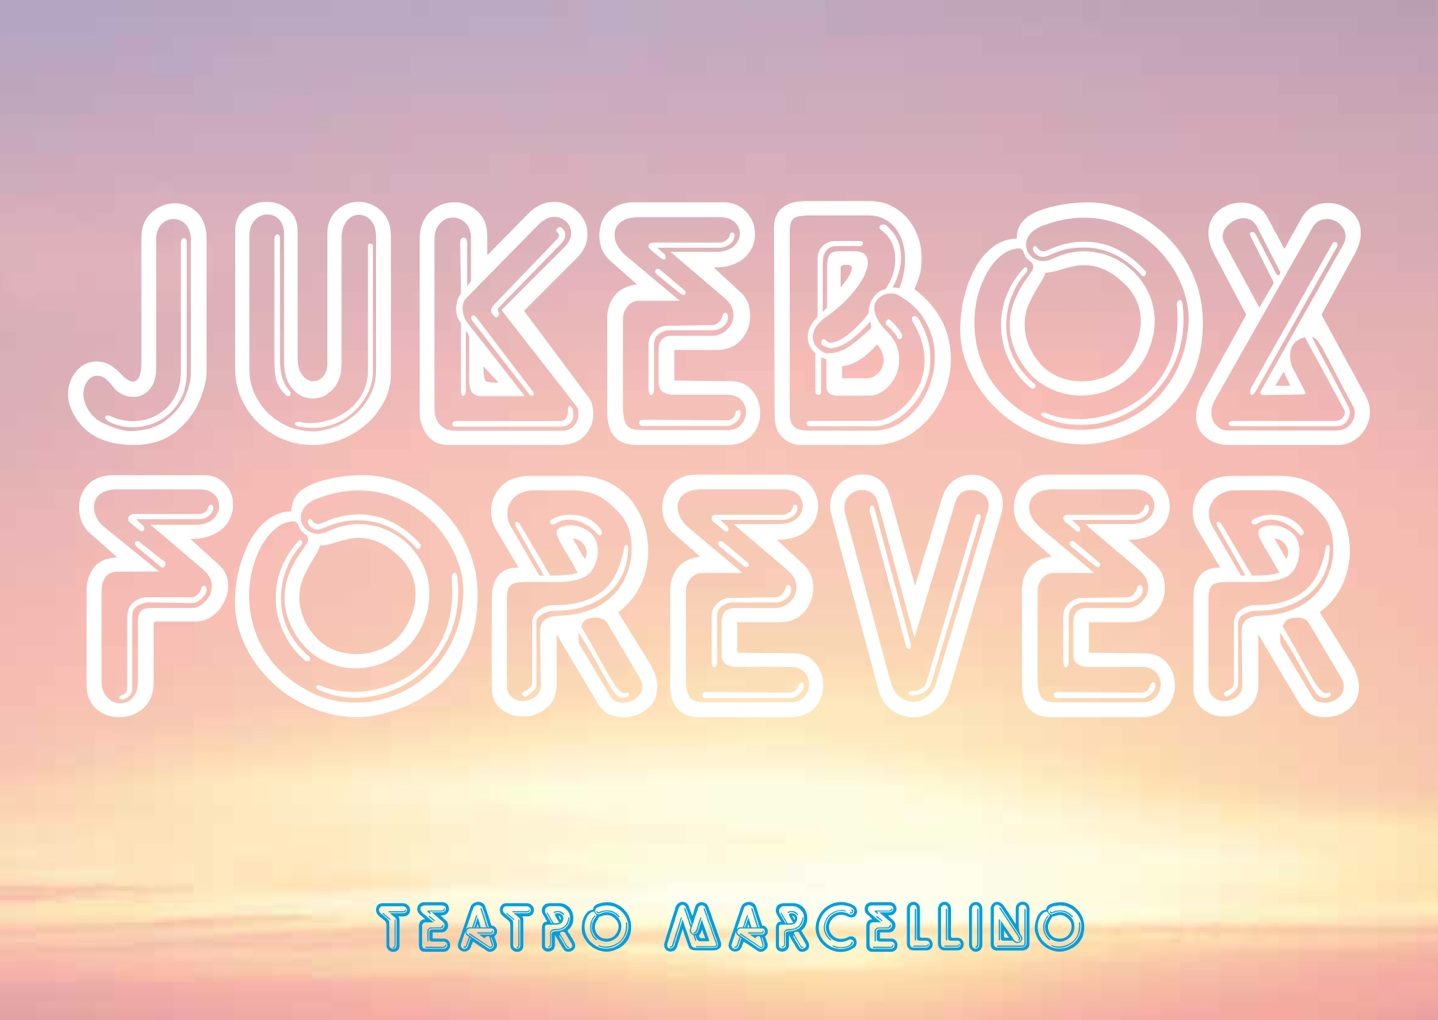 Jukebox forever